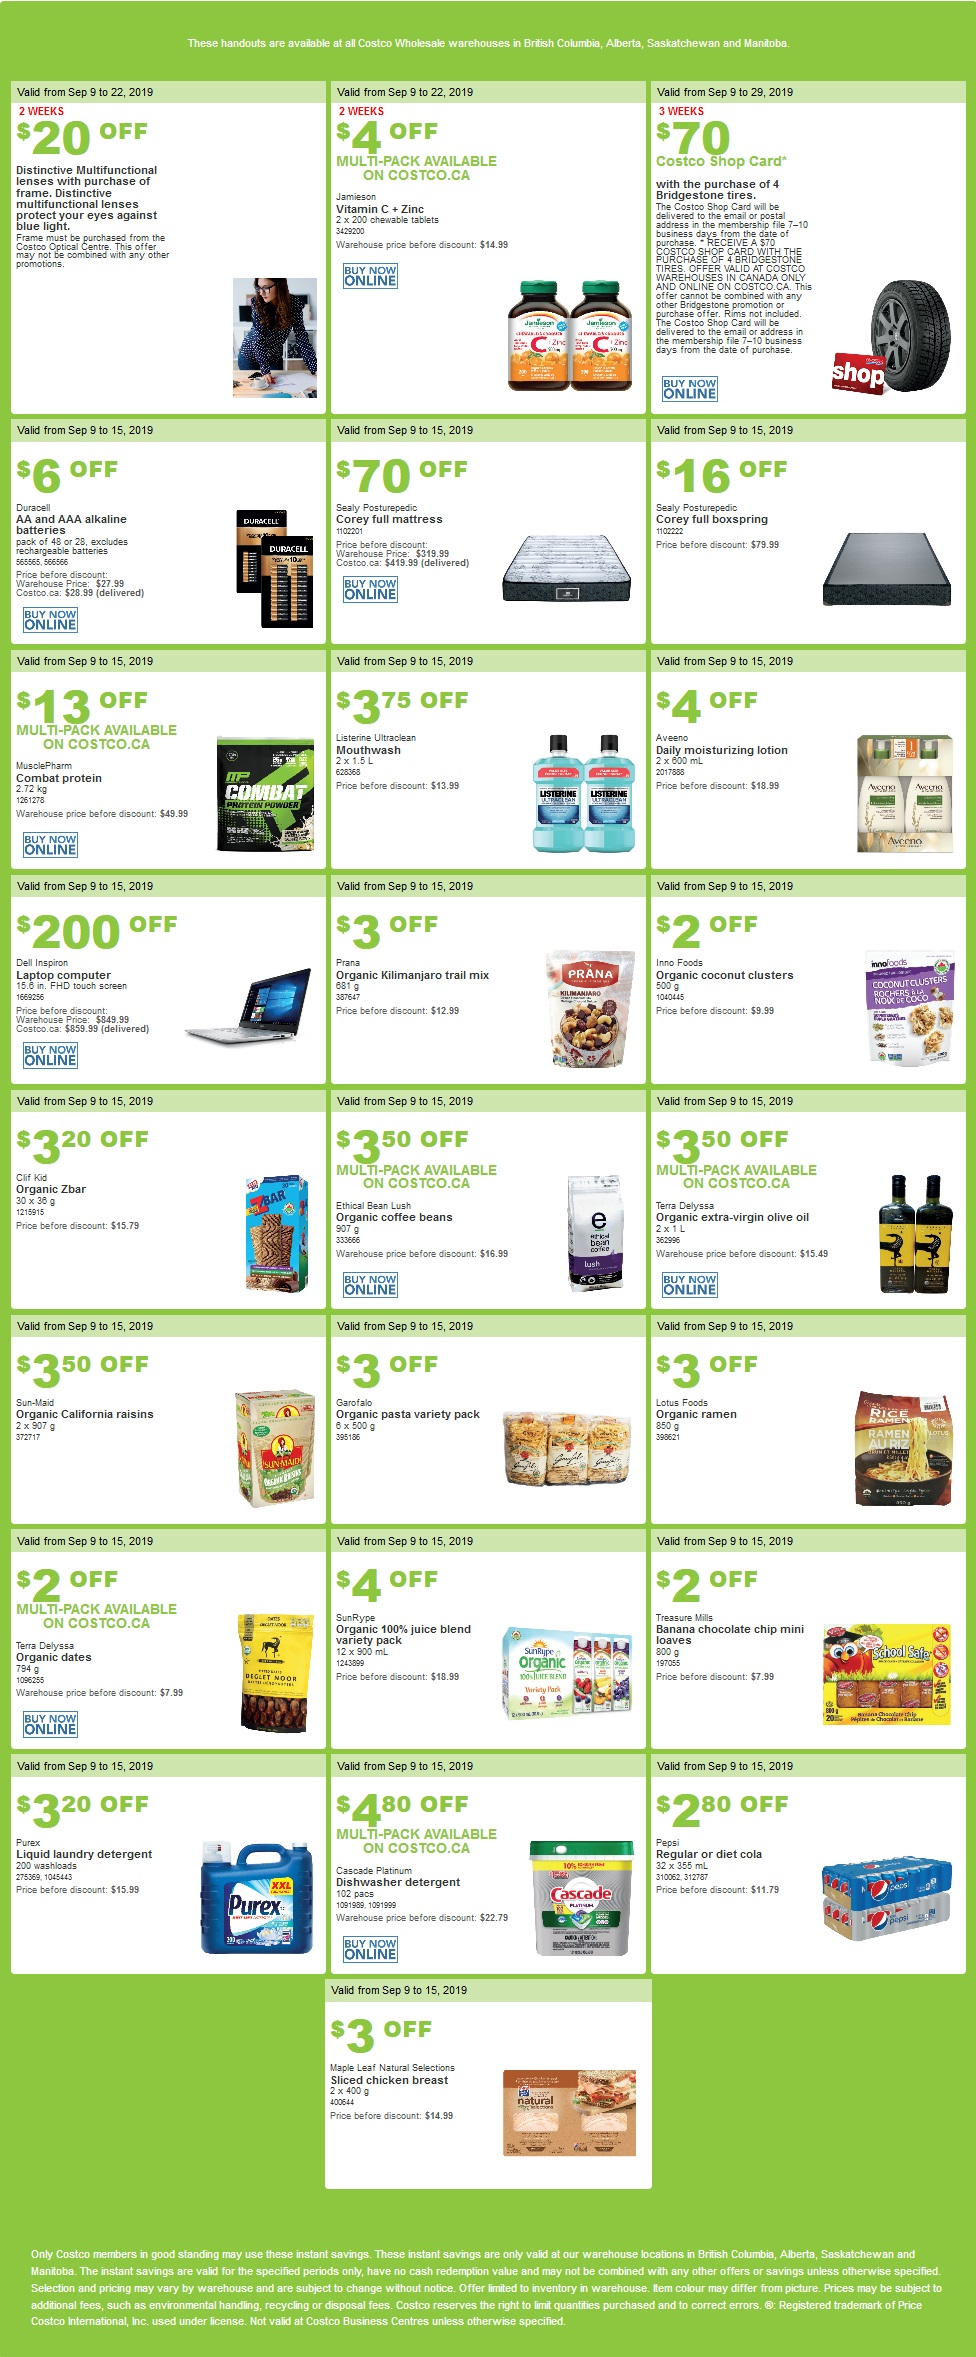 Costco Flyer for Sep 9-15, 2019 for BC, SK, MB